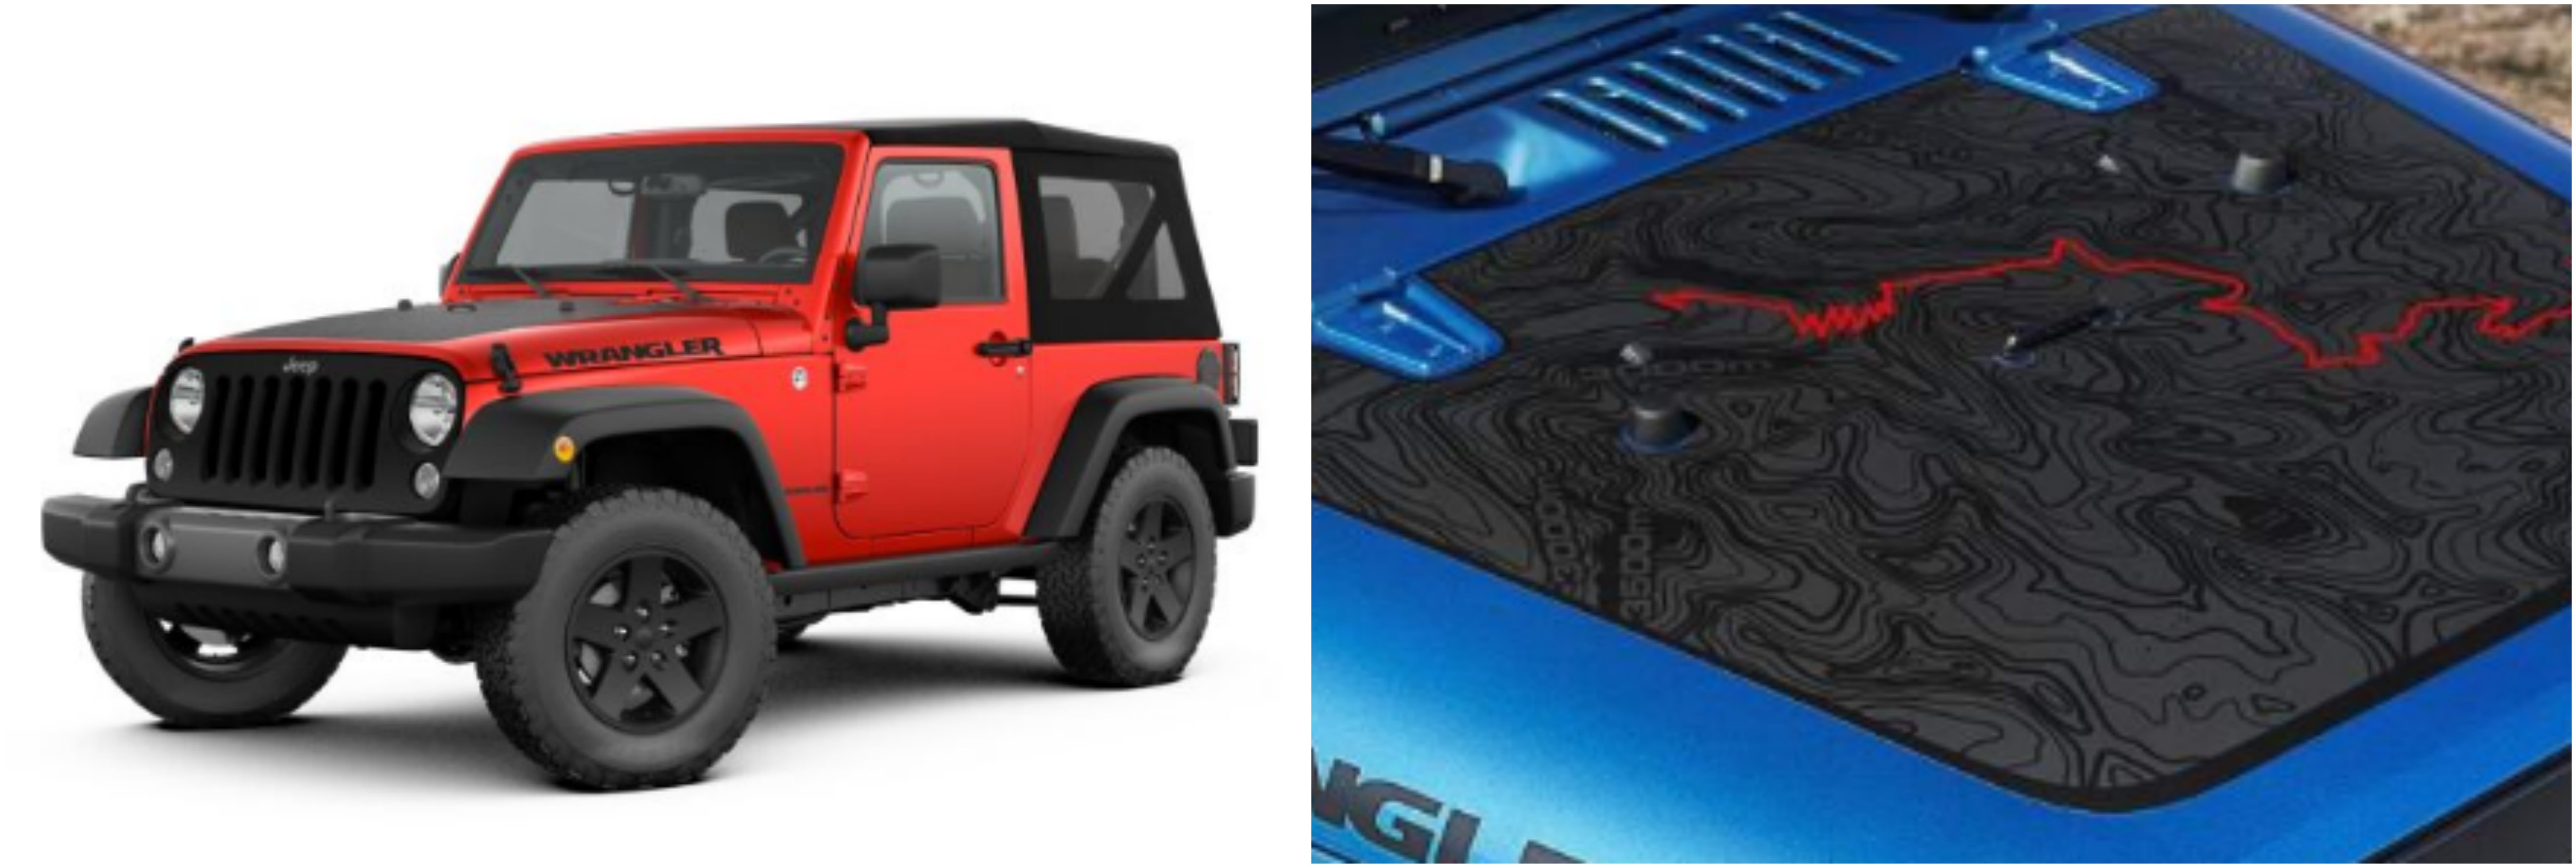 Jeep Wrangler Smoky Mountain >> Jeep Wrangler JK Special Edition Models: What Makes Them